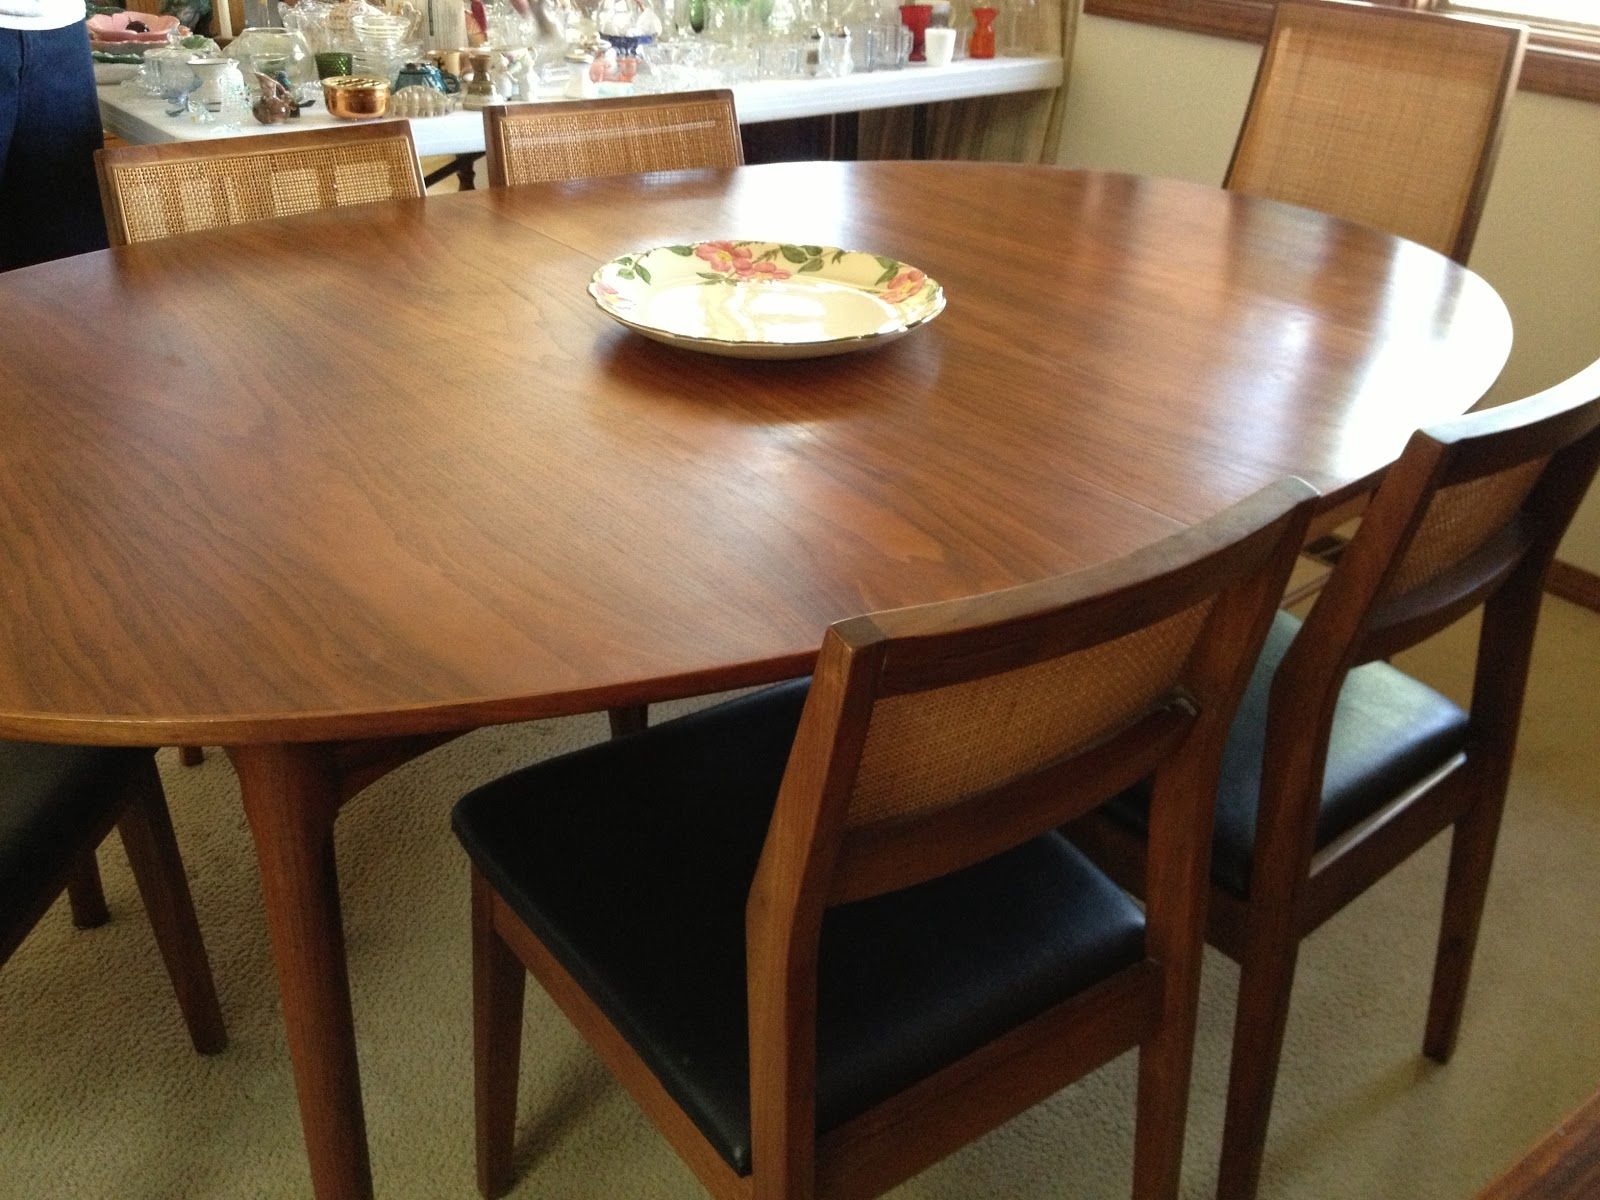 Knoll Founders Mid Century Table And Chairs Dining Walnut Cane